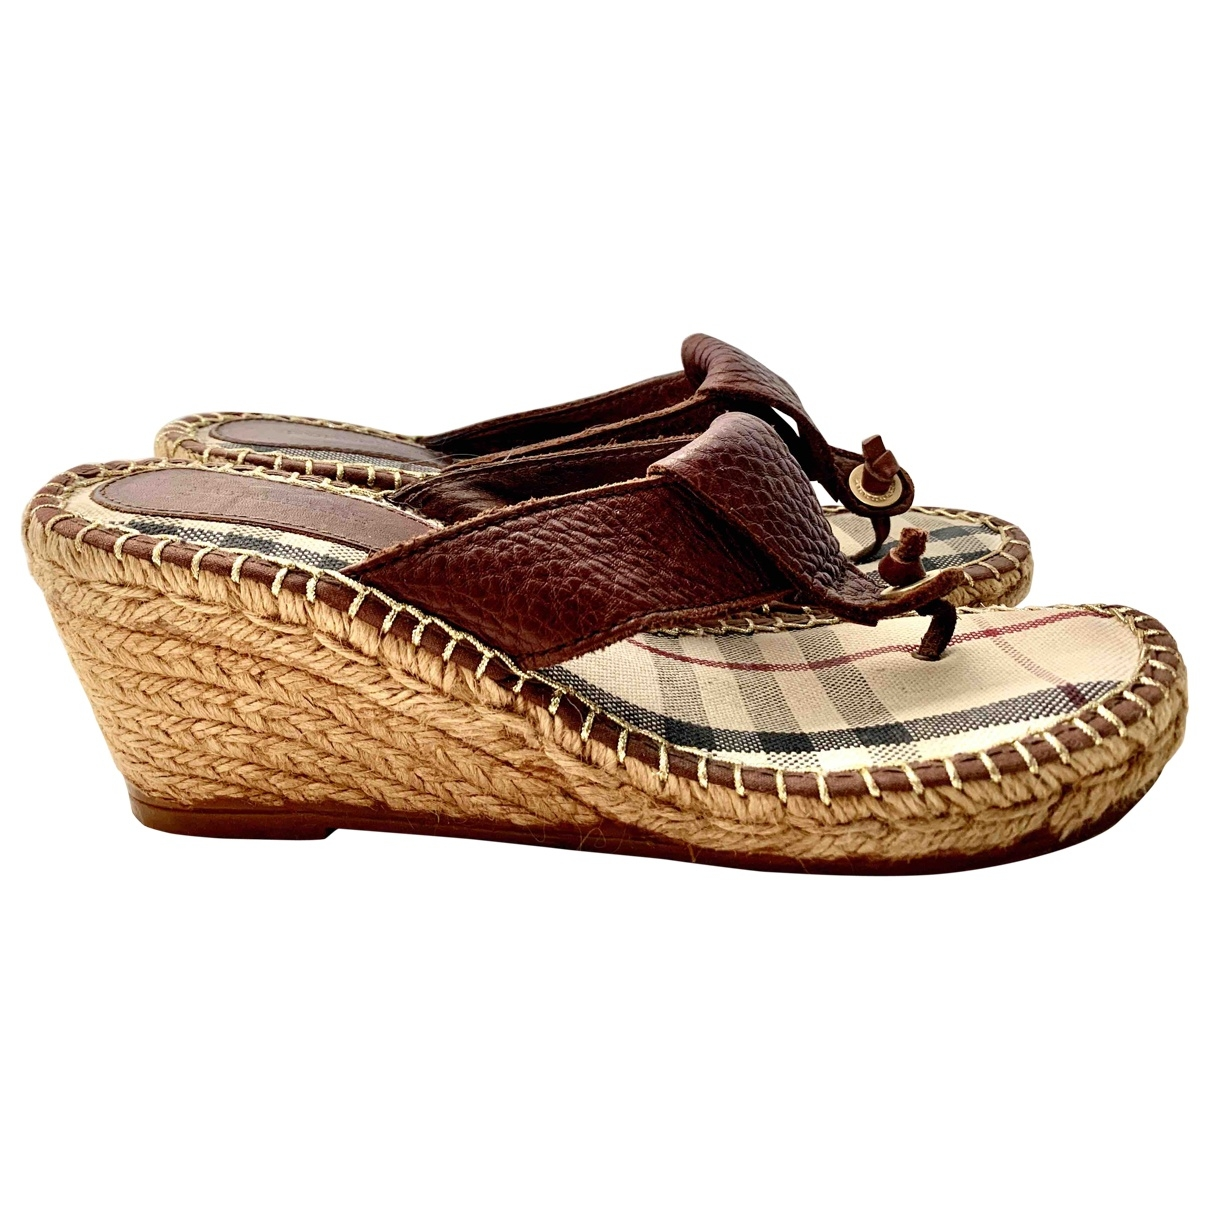 Burberry \N Brown Leather Espadrilles for Women 39 EU